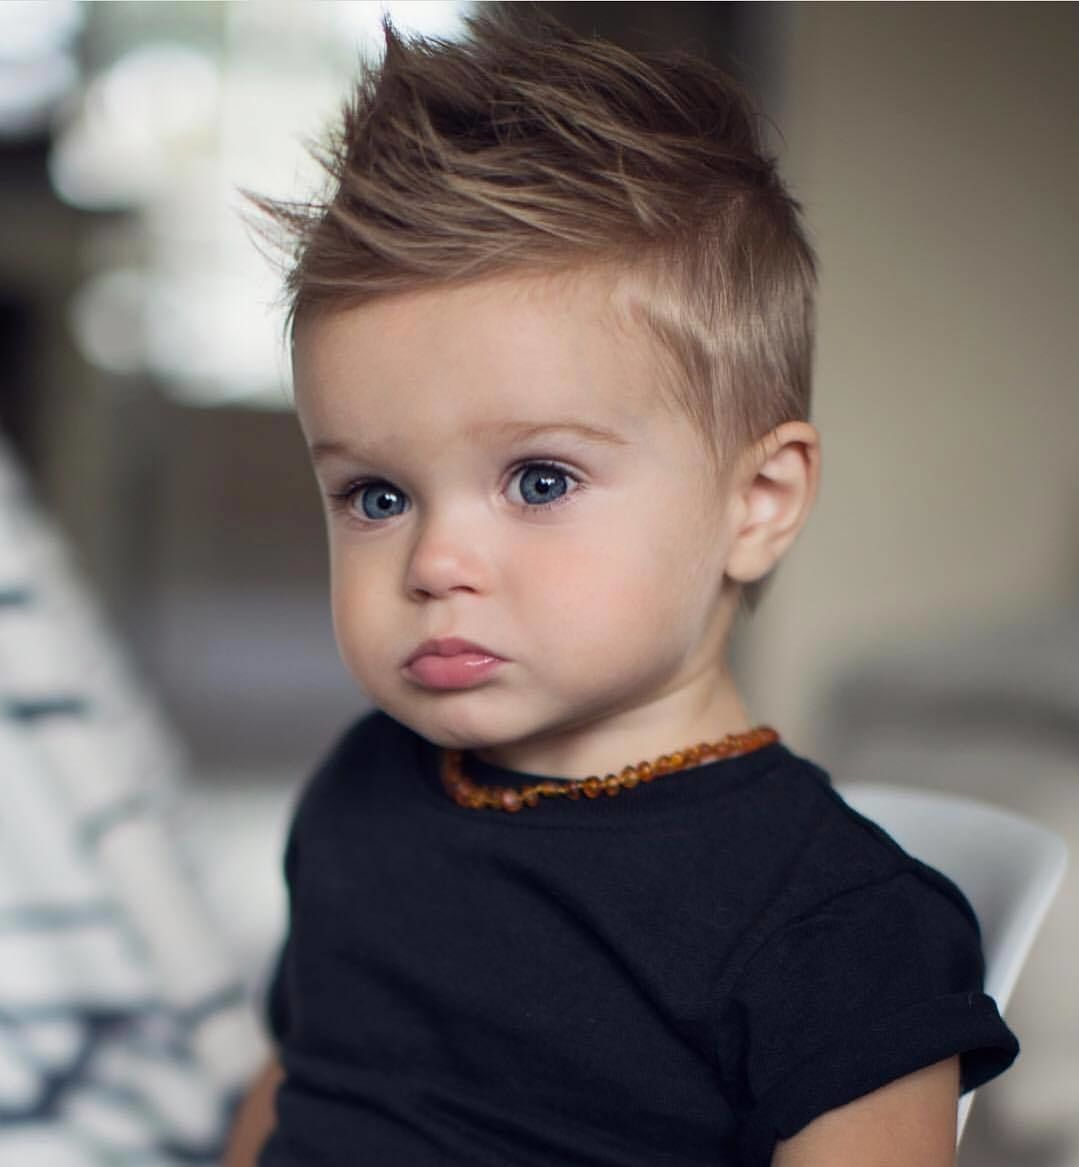 Pin By Womanslook On Womanslook Pinterest Haircut Styles Boy